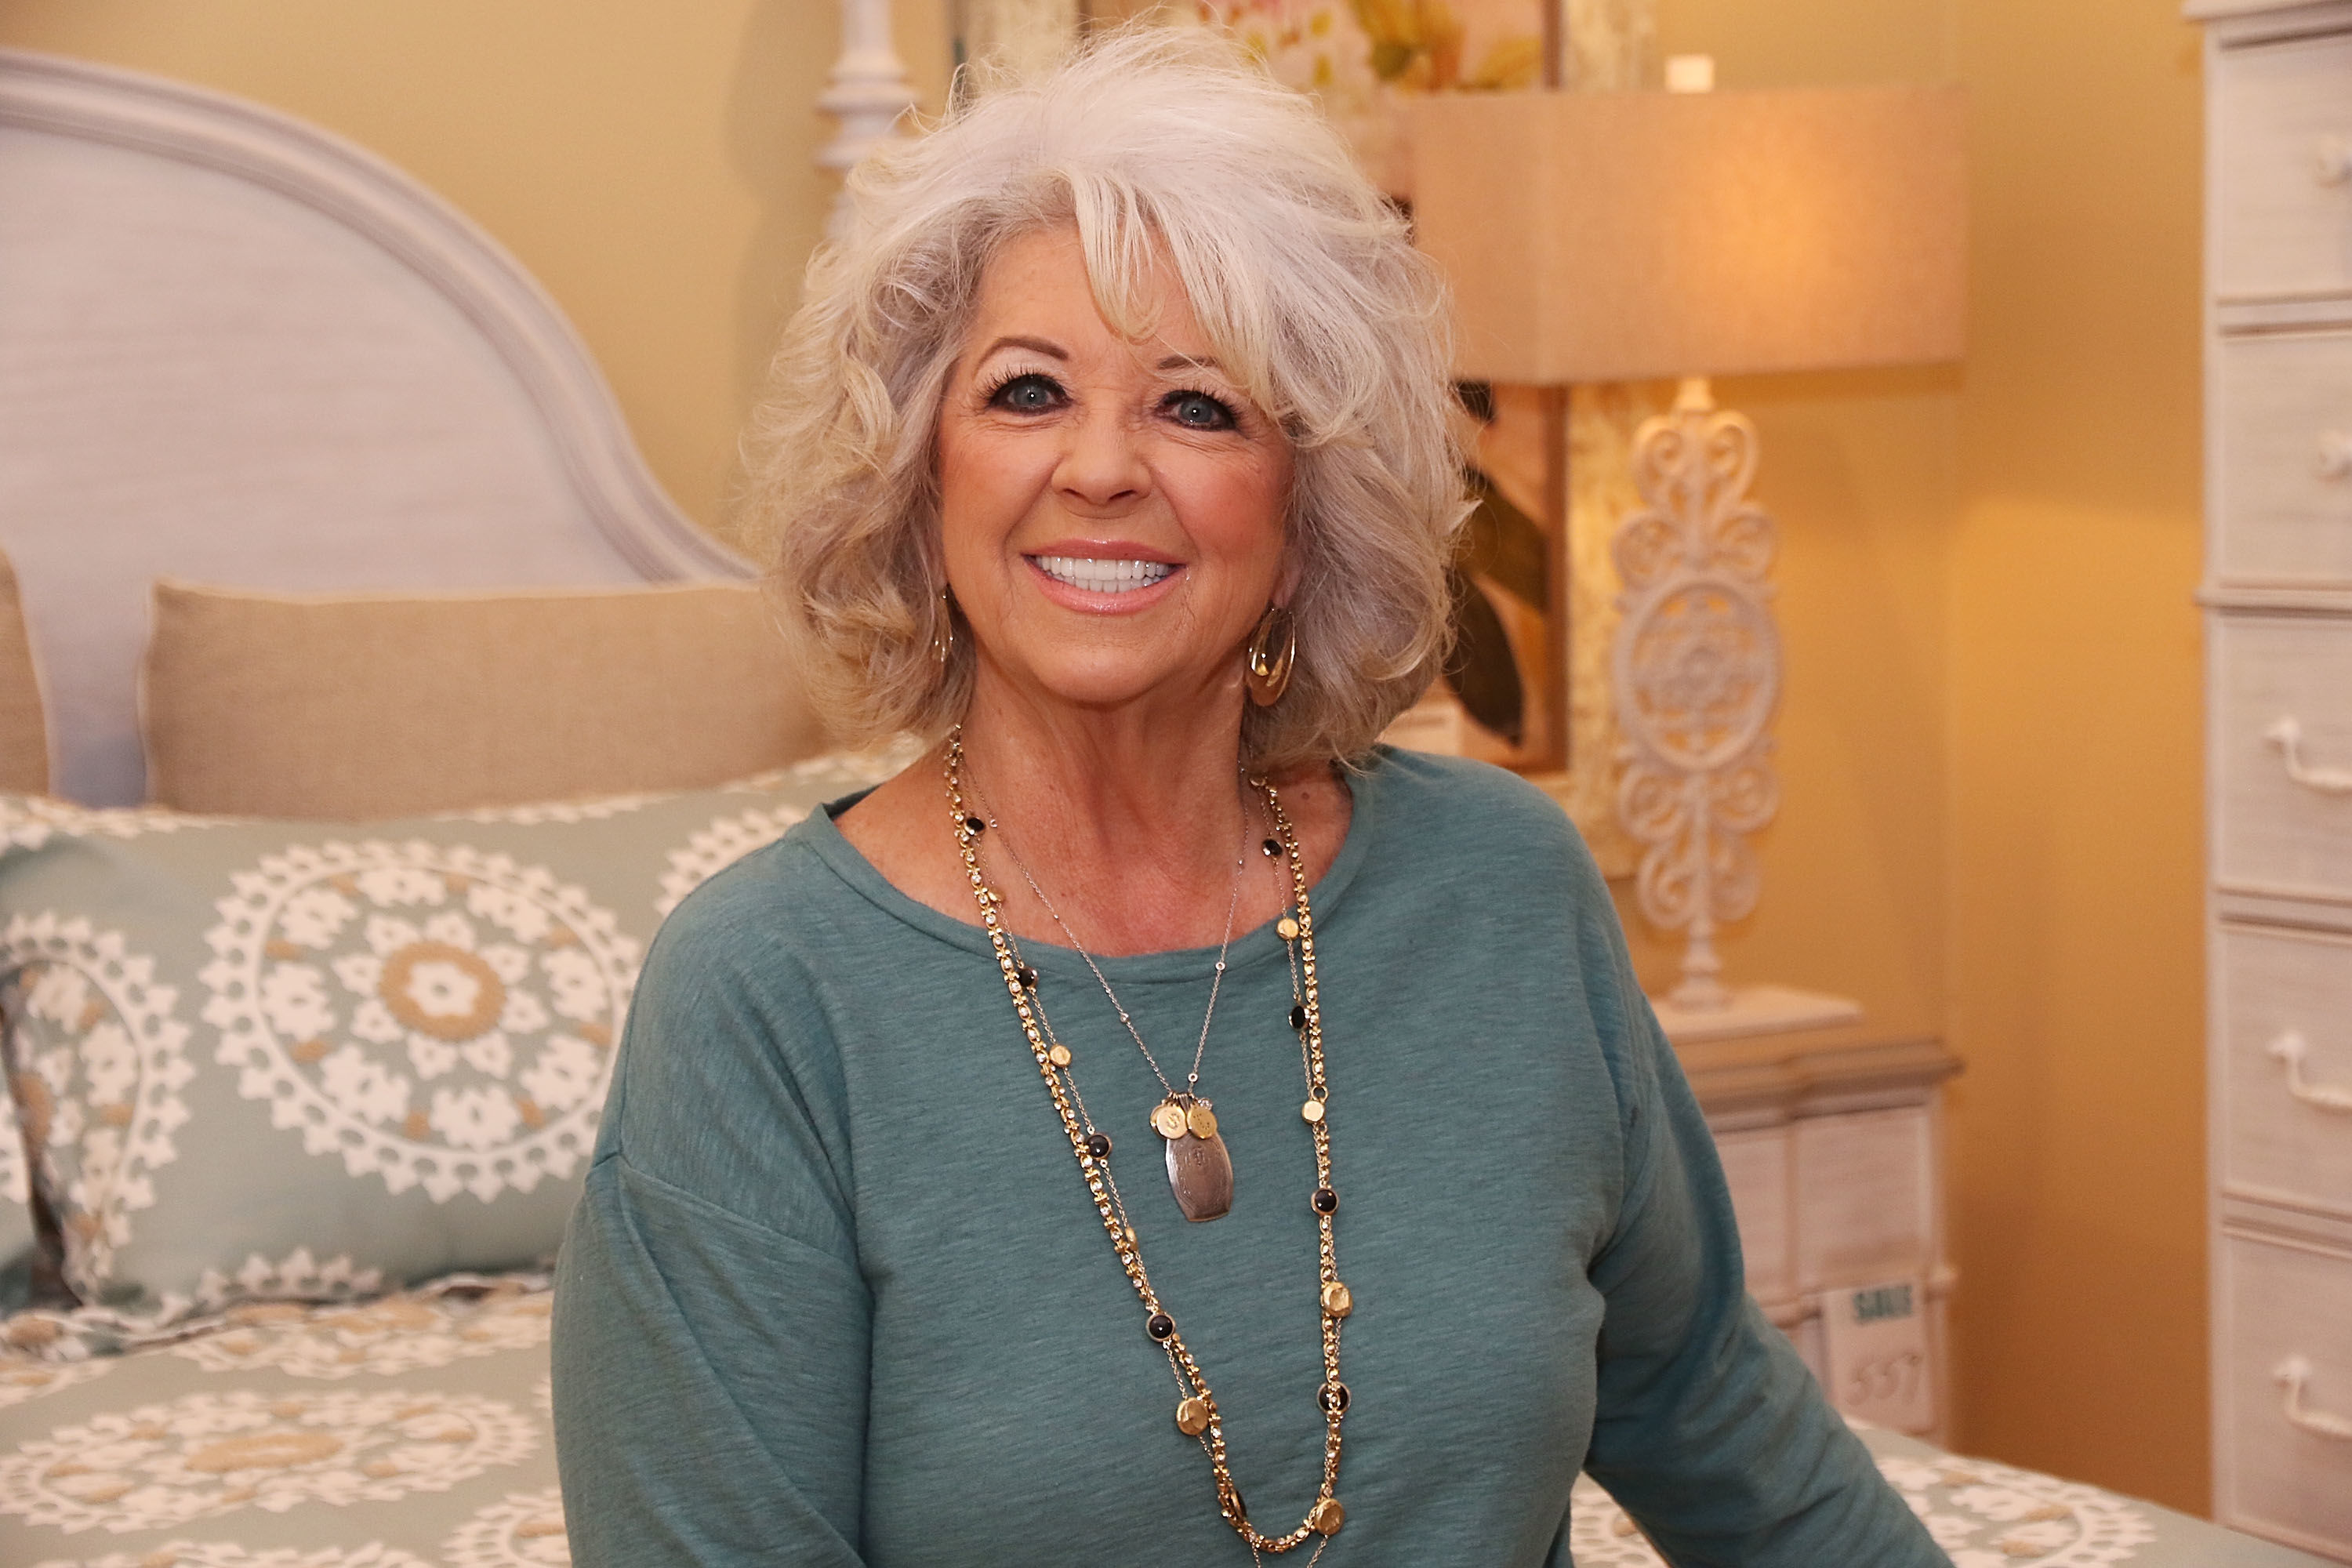 WATCH: Paula Deen Never Travels Without This Surprising Item